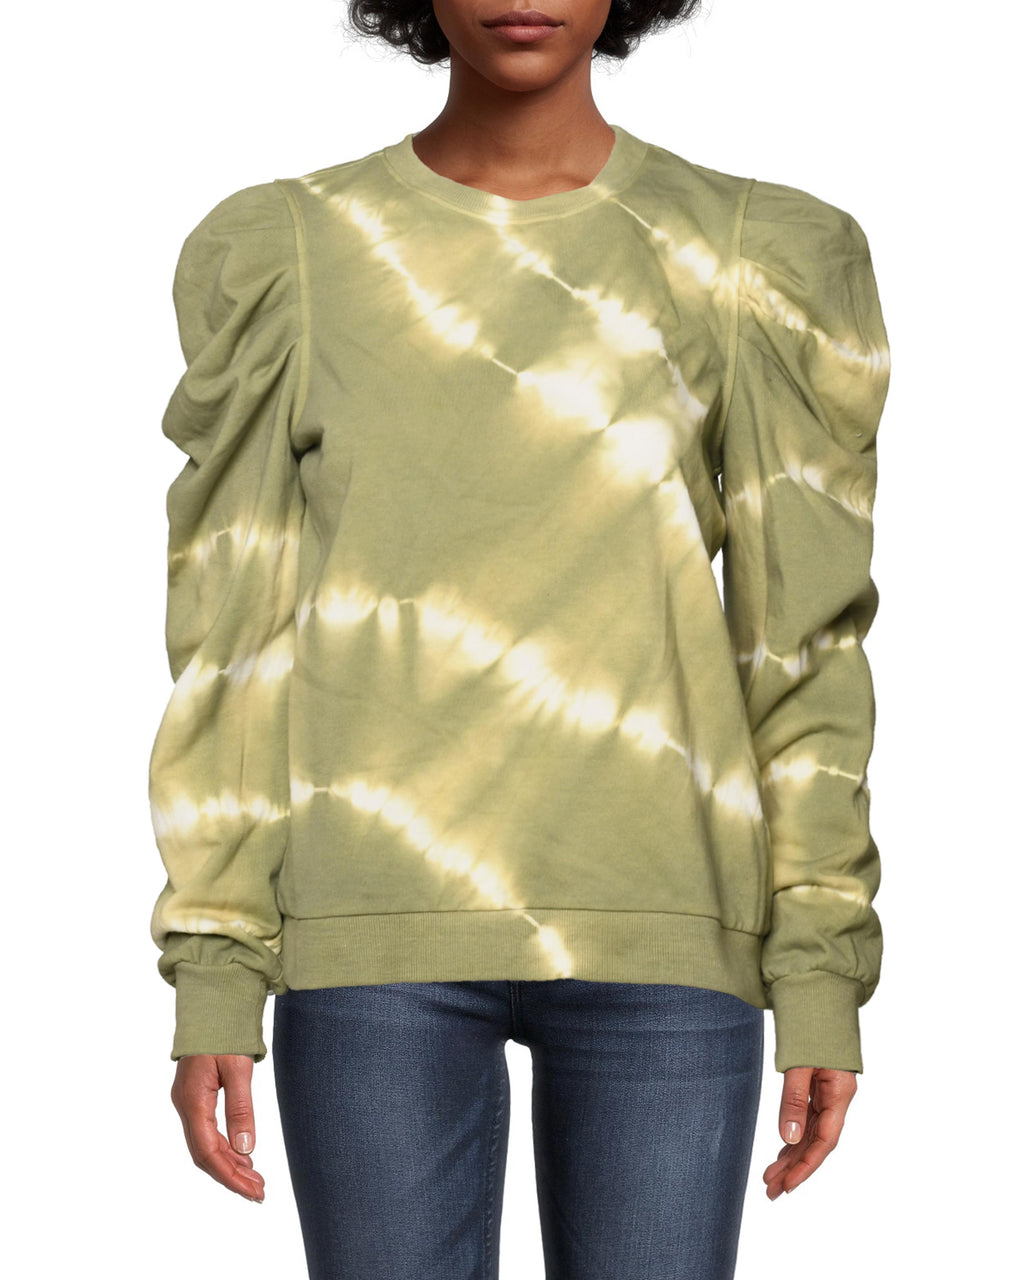 CT18689 - TIE DYE PUFF SLEEVE CREW NECK SWEATSHIRT - tops - knitwear - Loungewear, elevated. The everyday essential is updated with modern tie dye, a feminine puffed sleeve and ribbing at the hem and cuff. Perfect for lounging at home or a lunch date.Each item is hand-dyed for unique details. There may be a slight variation in color or pattern. Add 1 line break Stylist Tip: Pair with our silk cargo pants for an off duty look.